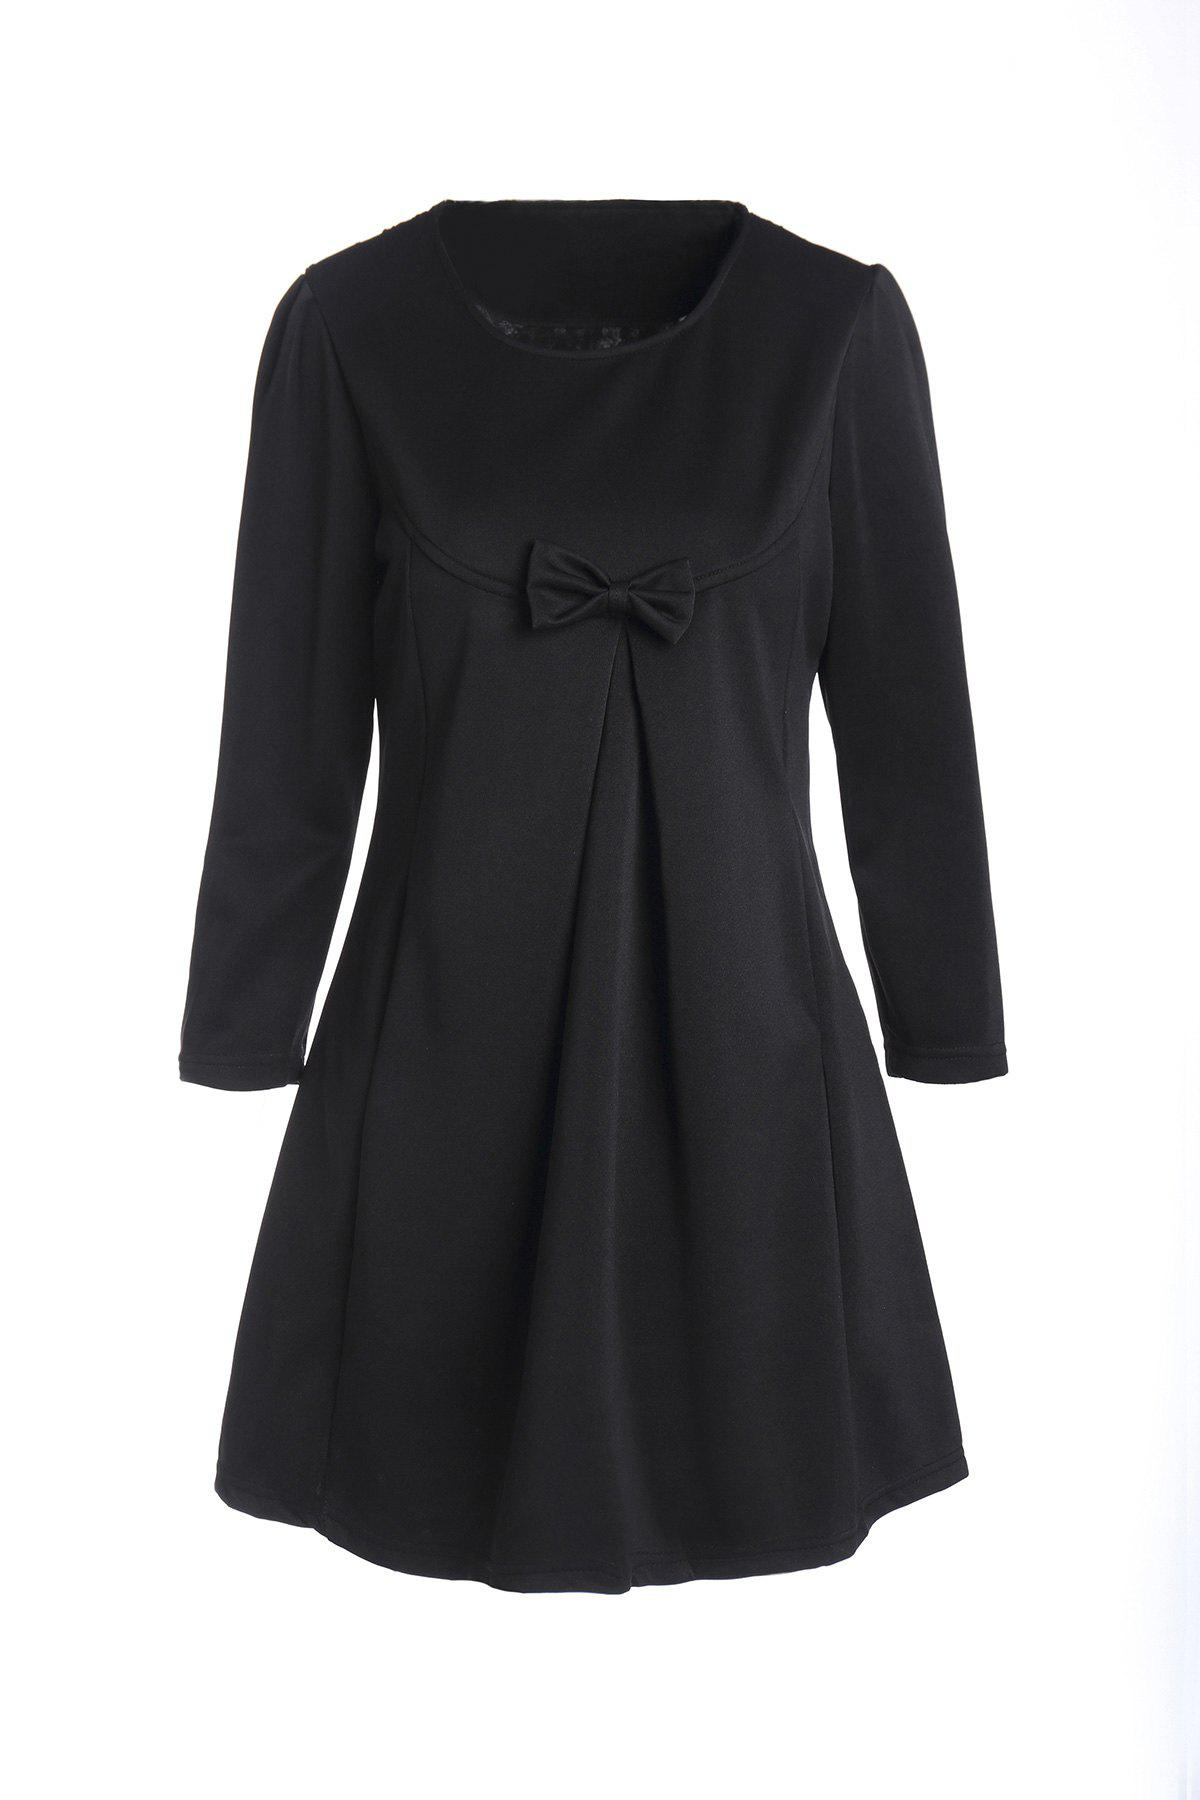 Chic Bowknot Design Solid Color Round Neck 3/4 Sleeve Women's Dress - BLACK 4XL